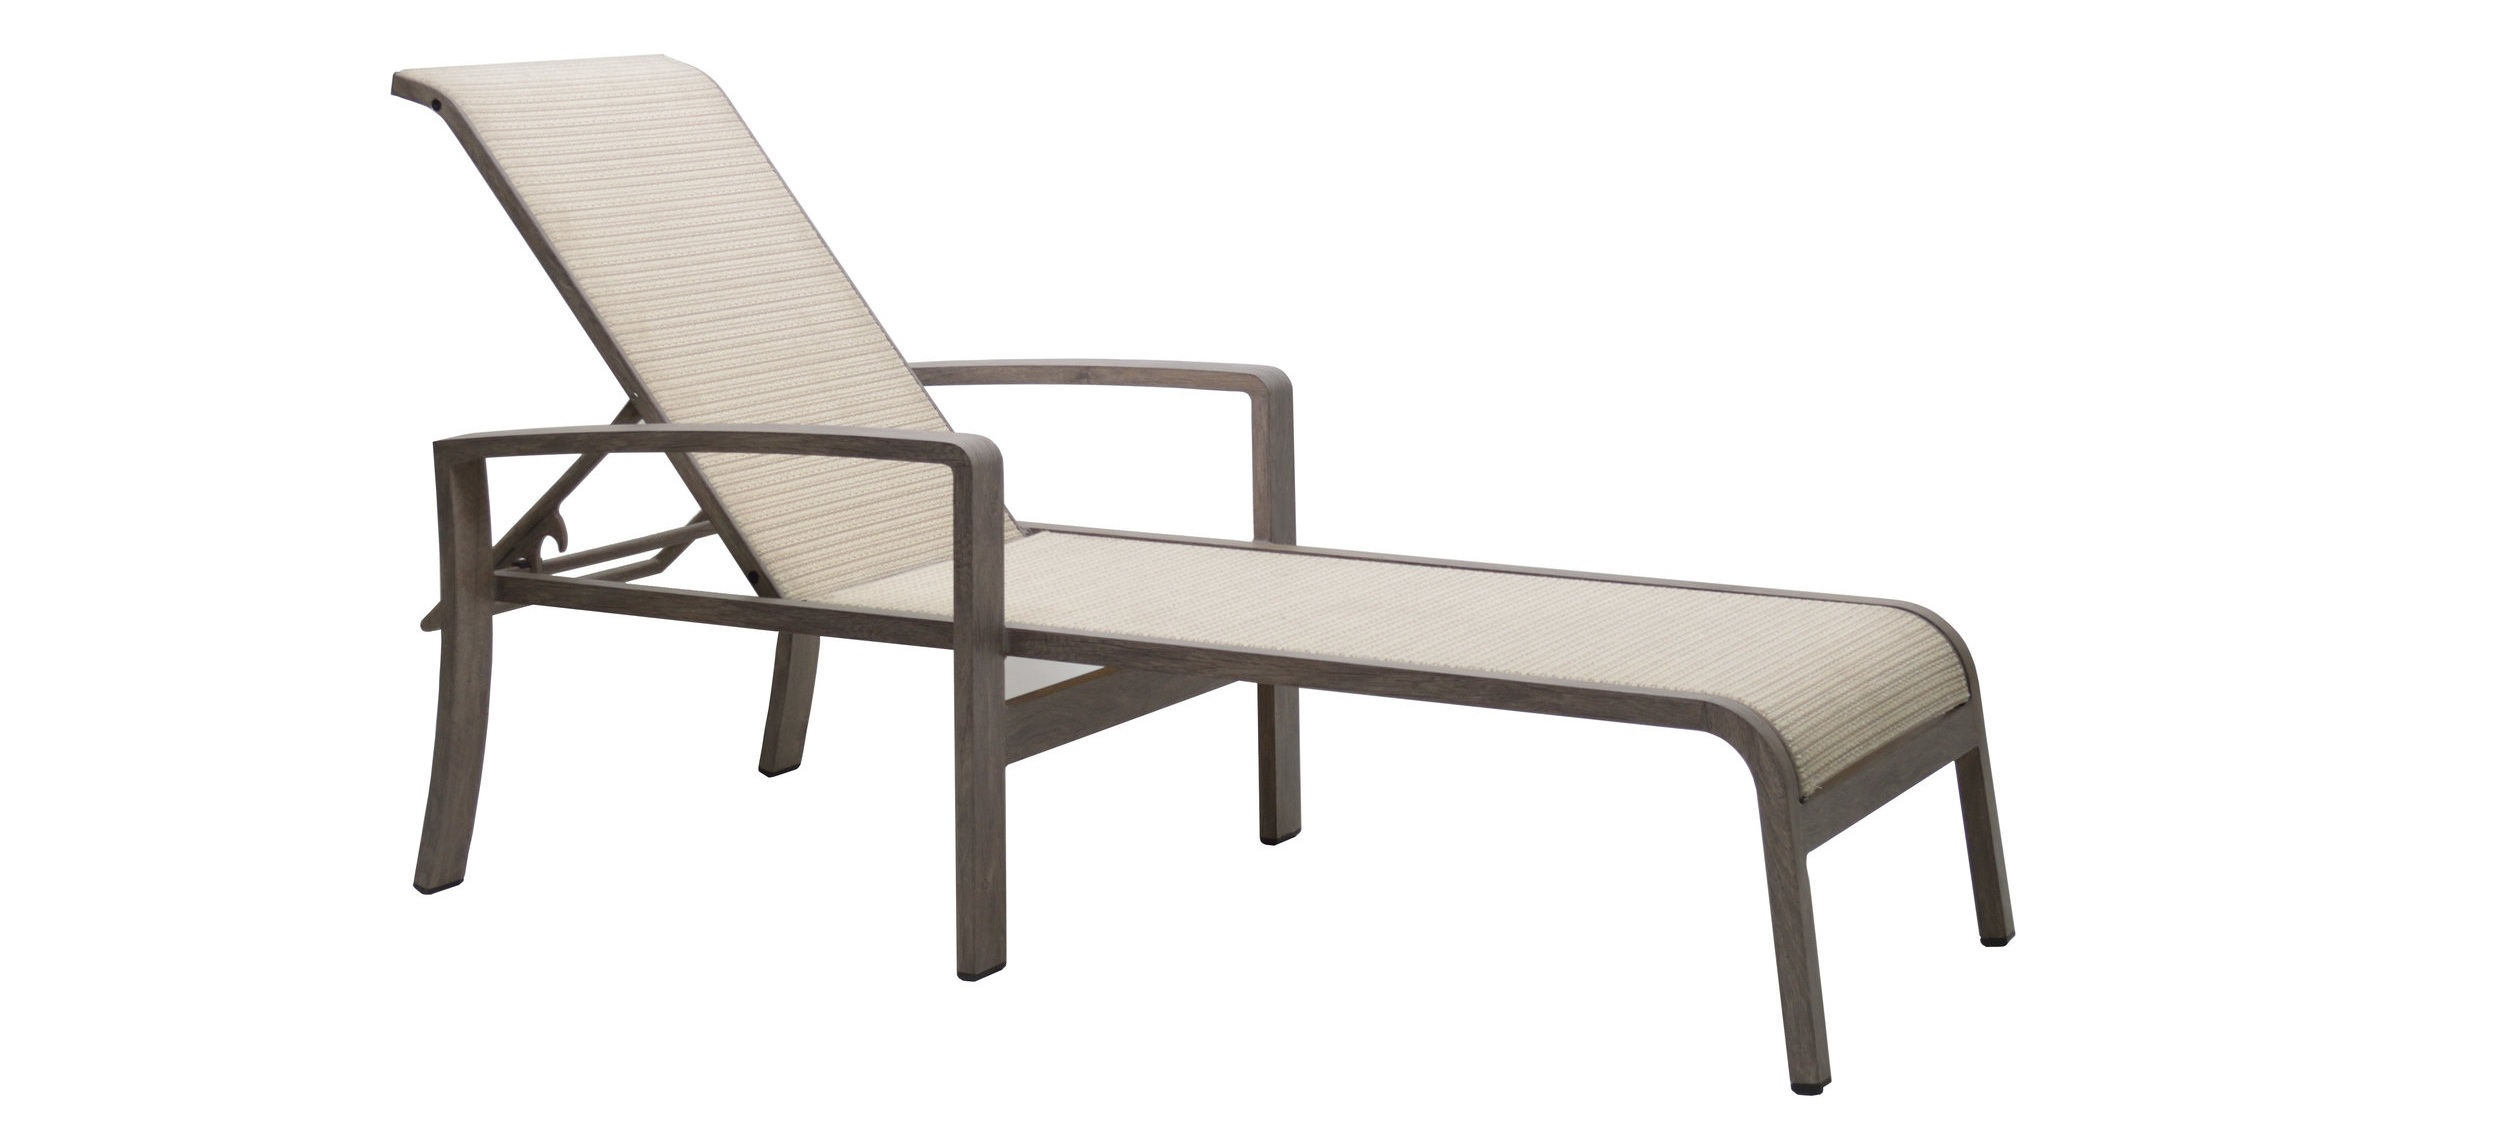 "S975351 Seattle Sling Chaise    29.5"" x 82.5"" x 23.4"""